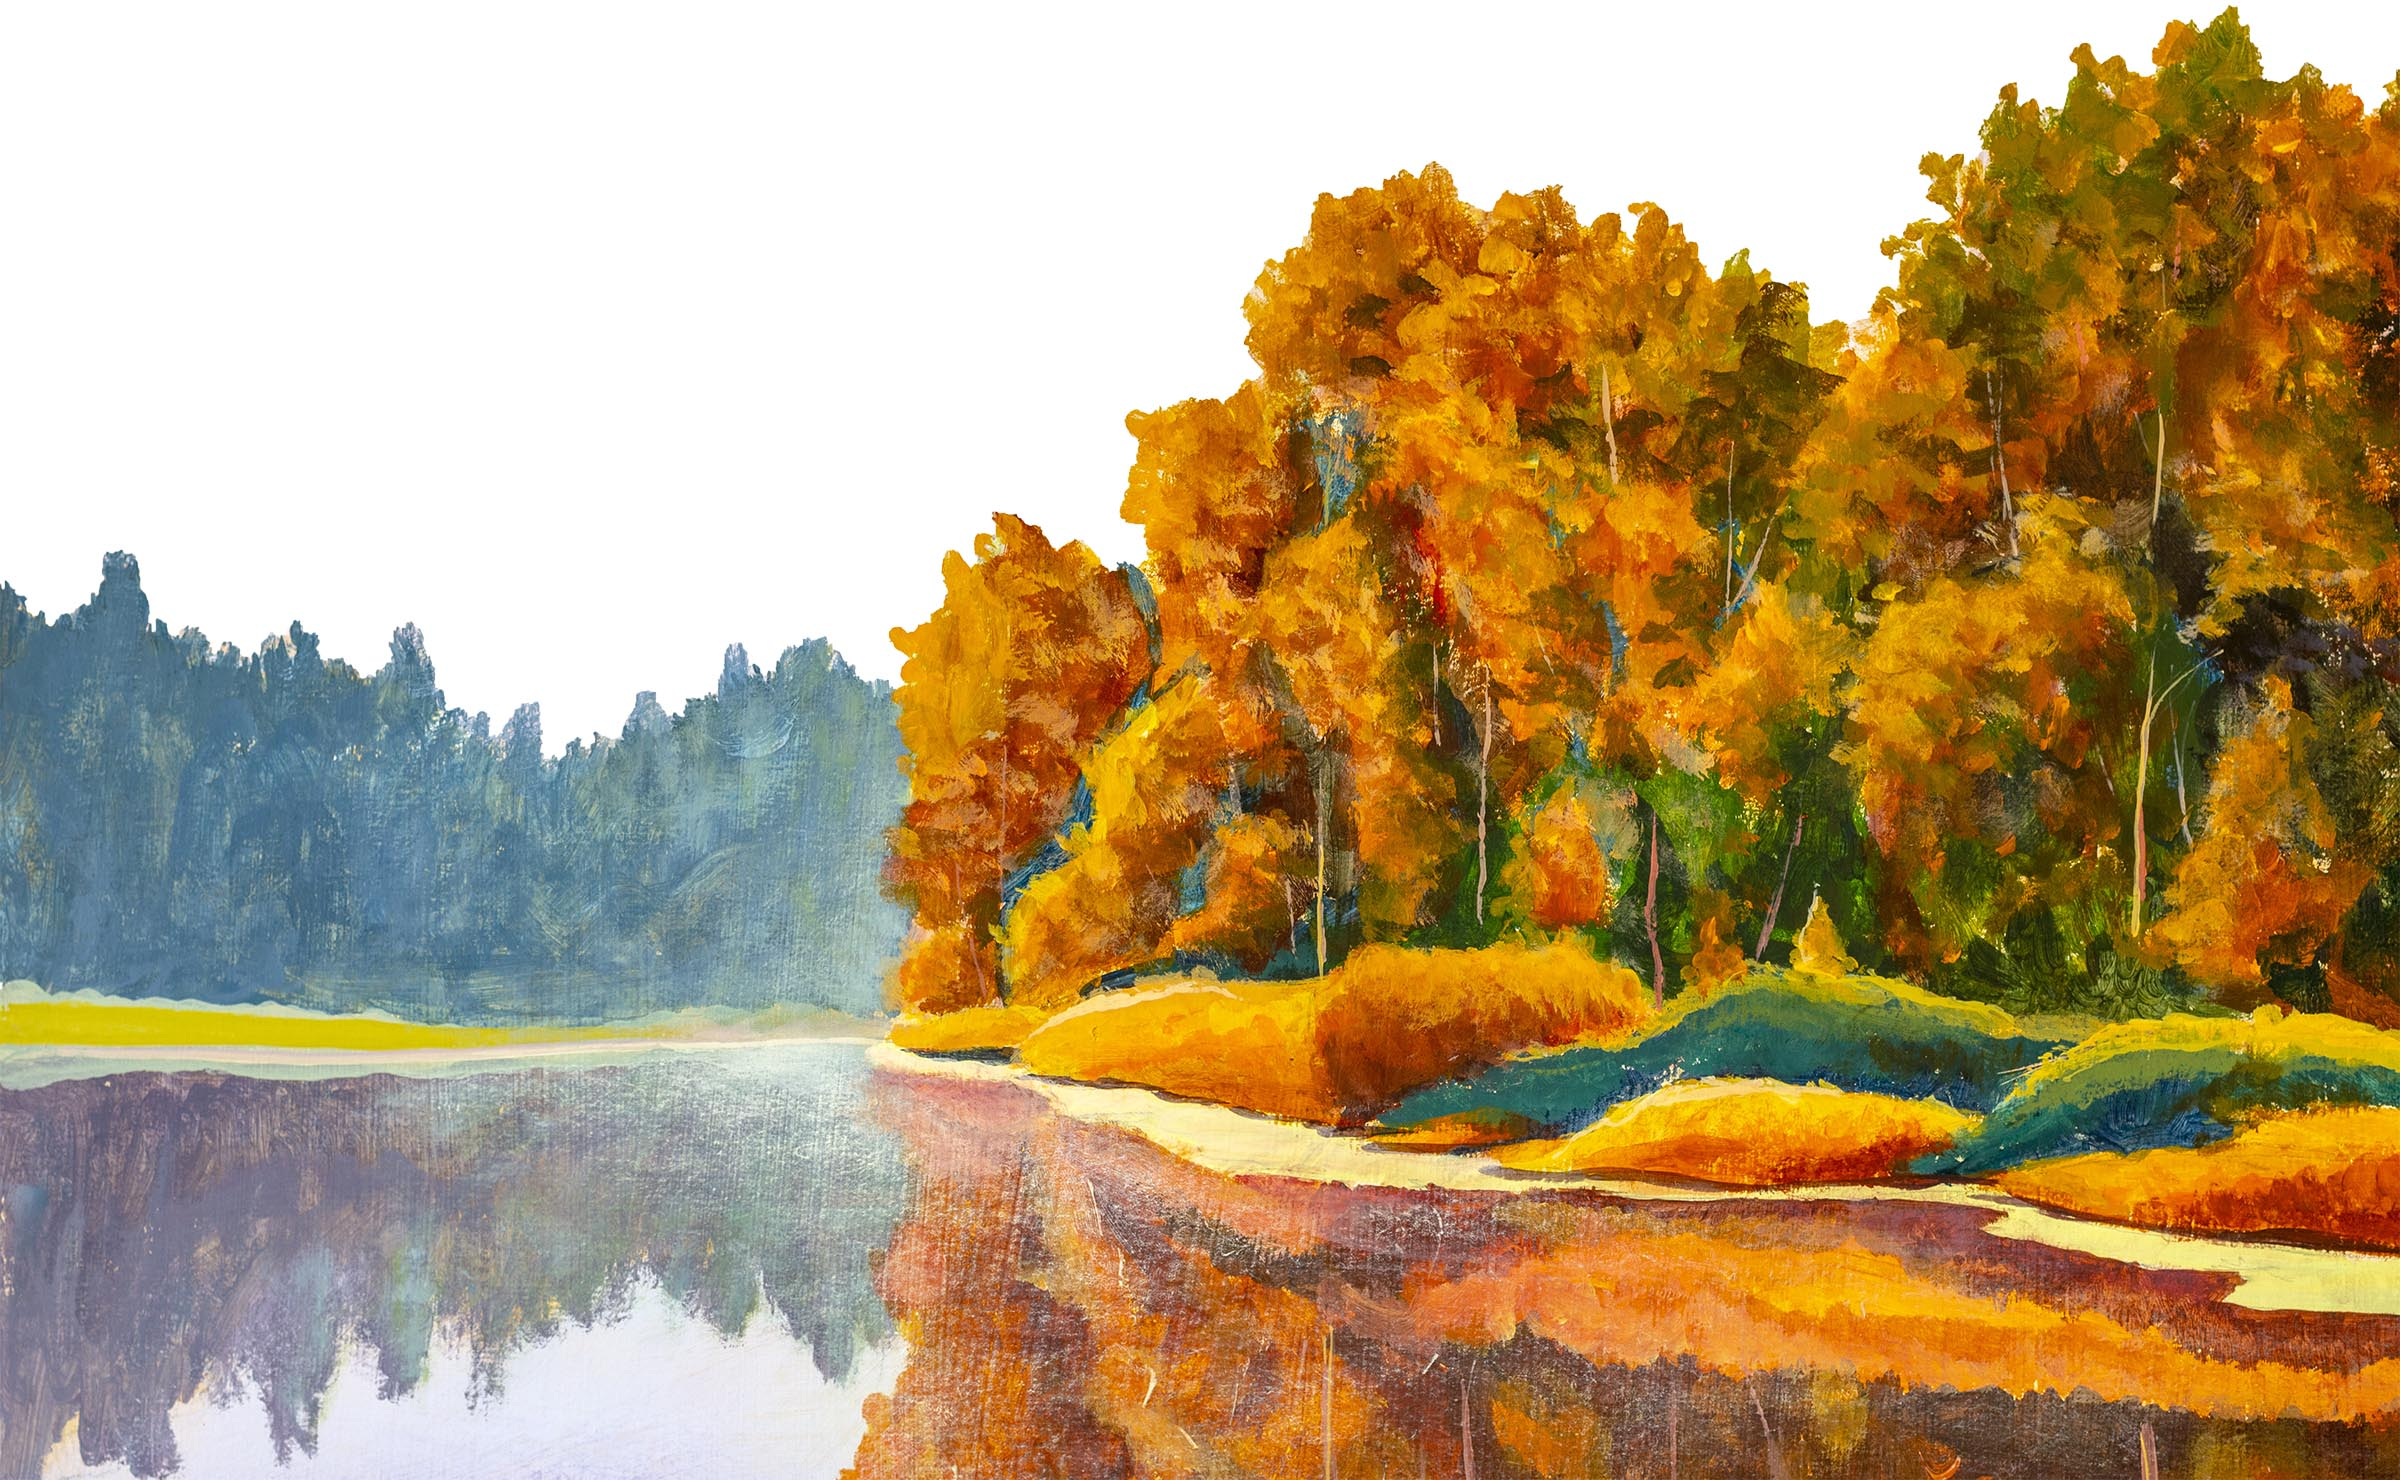 Original on painting on canvas by artist Autumn on river. Lake landscape nature fine art